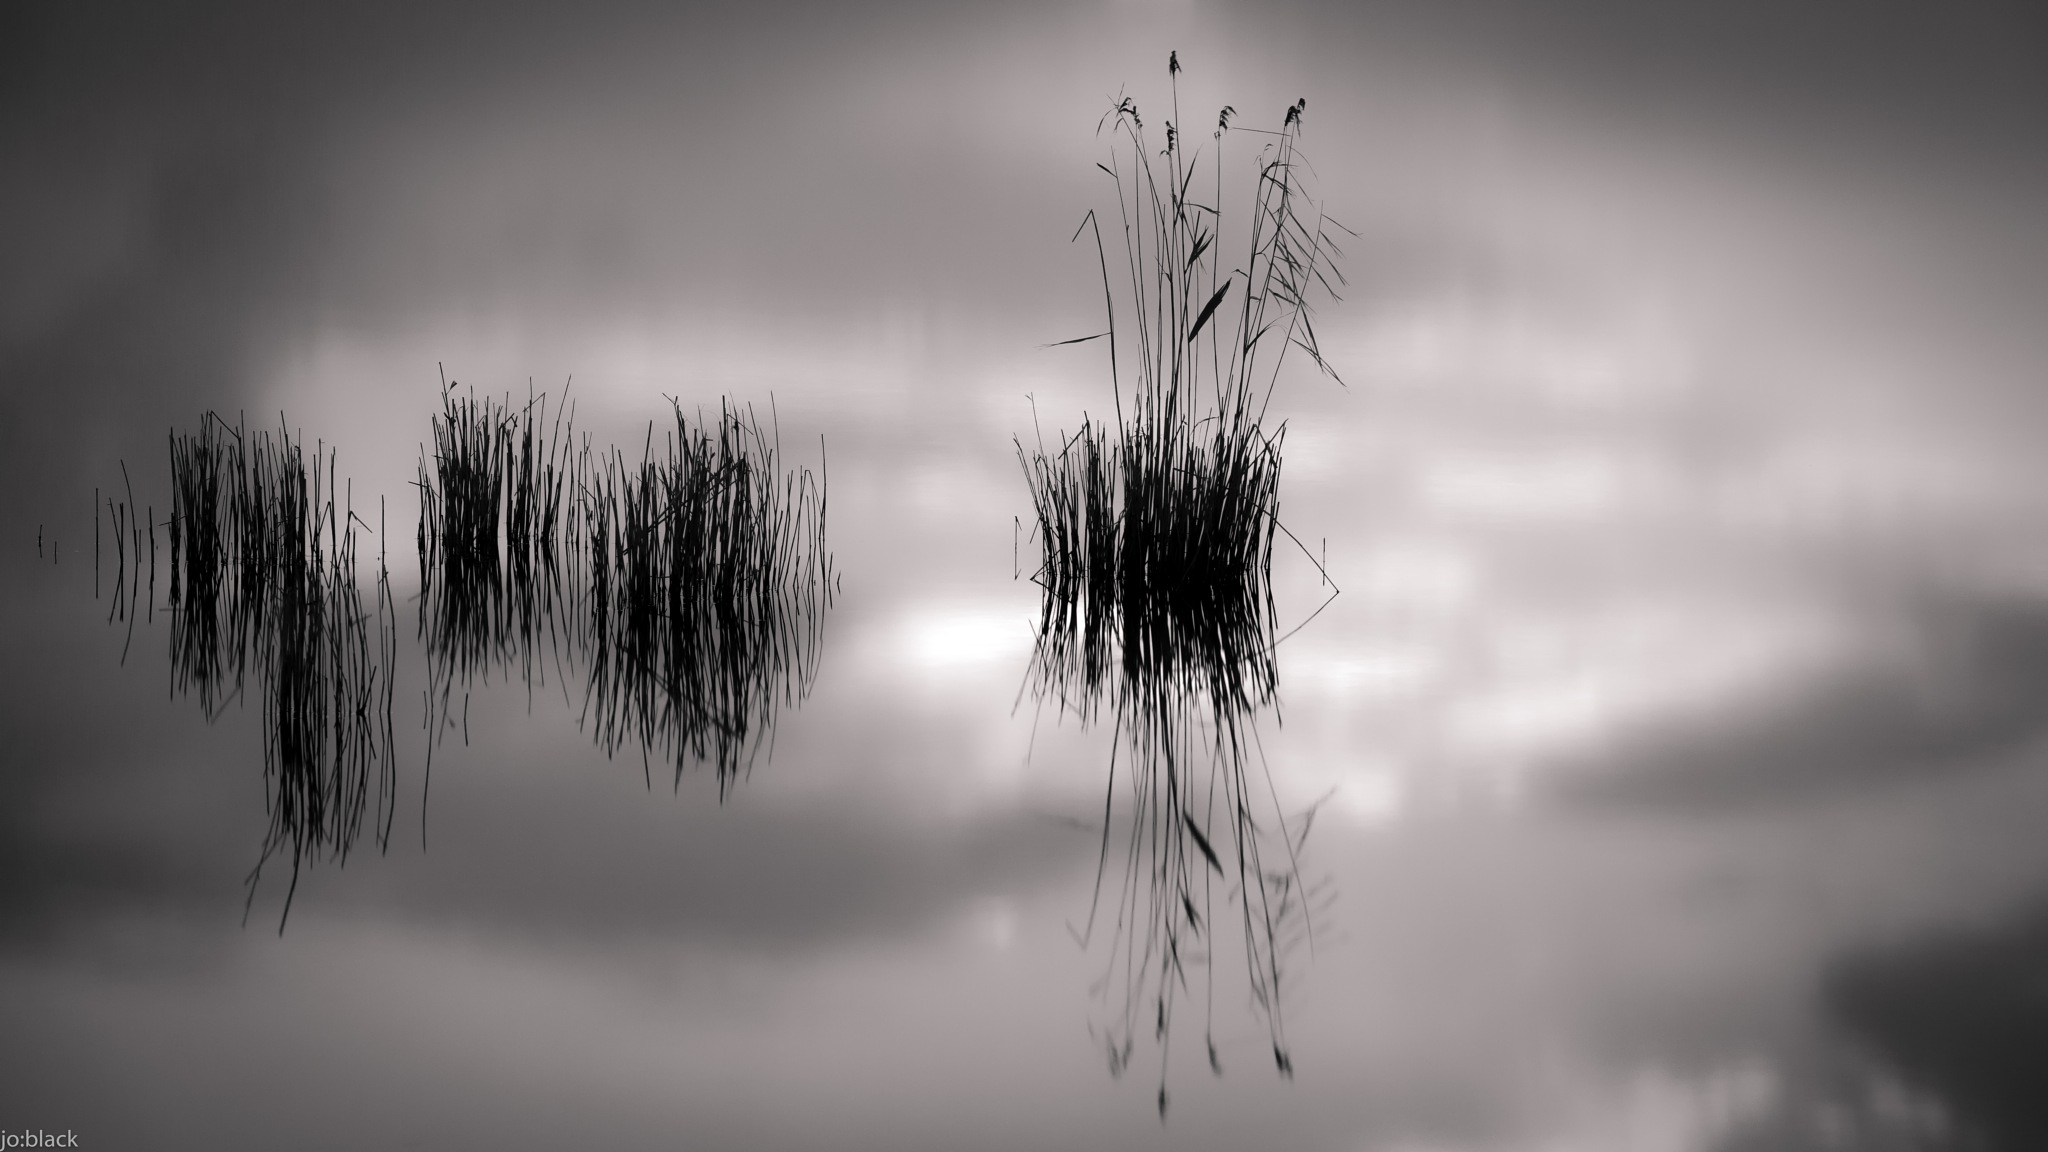 tranquility by jo:black